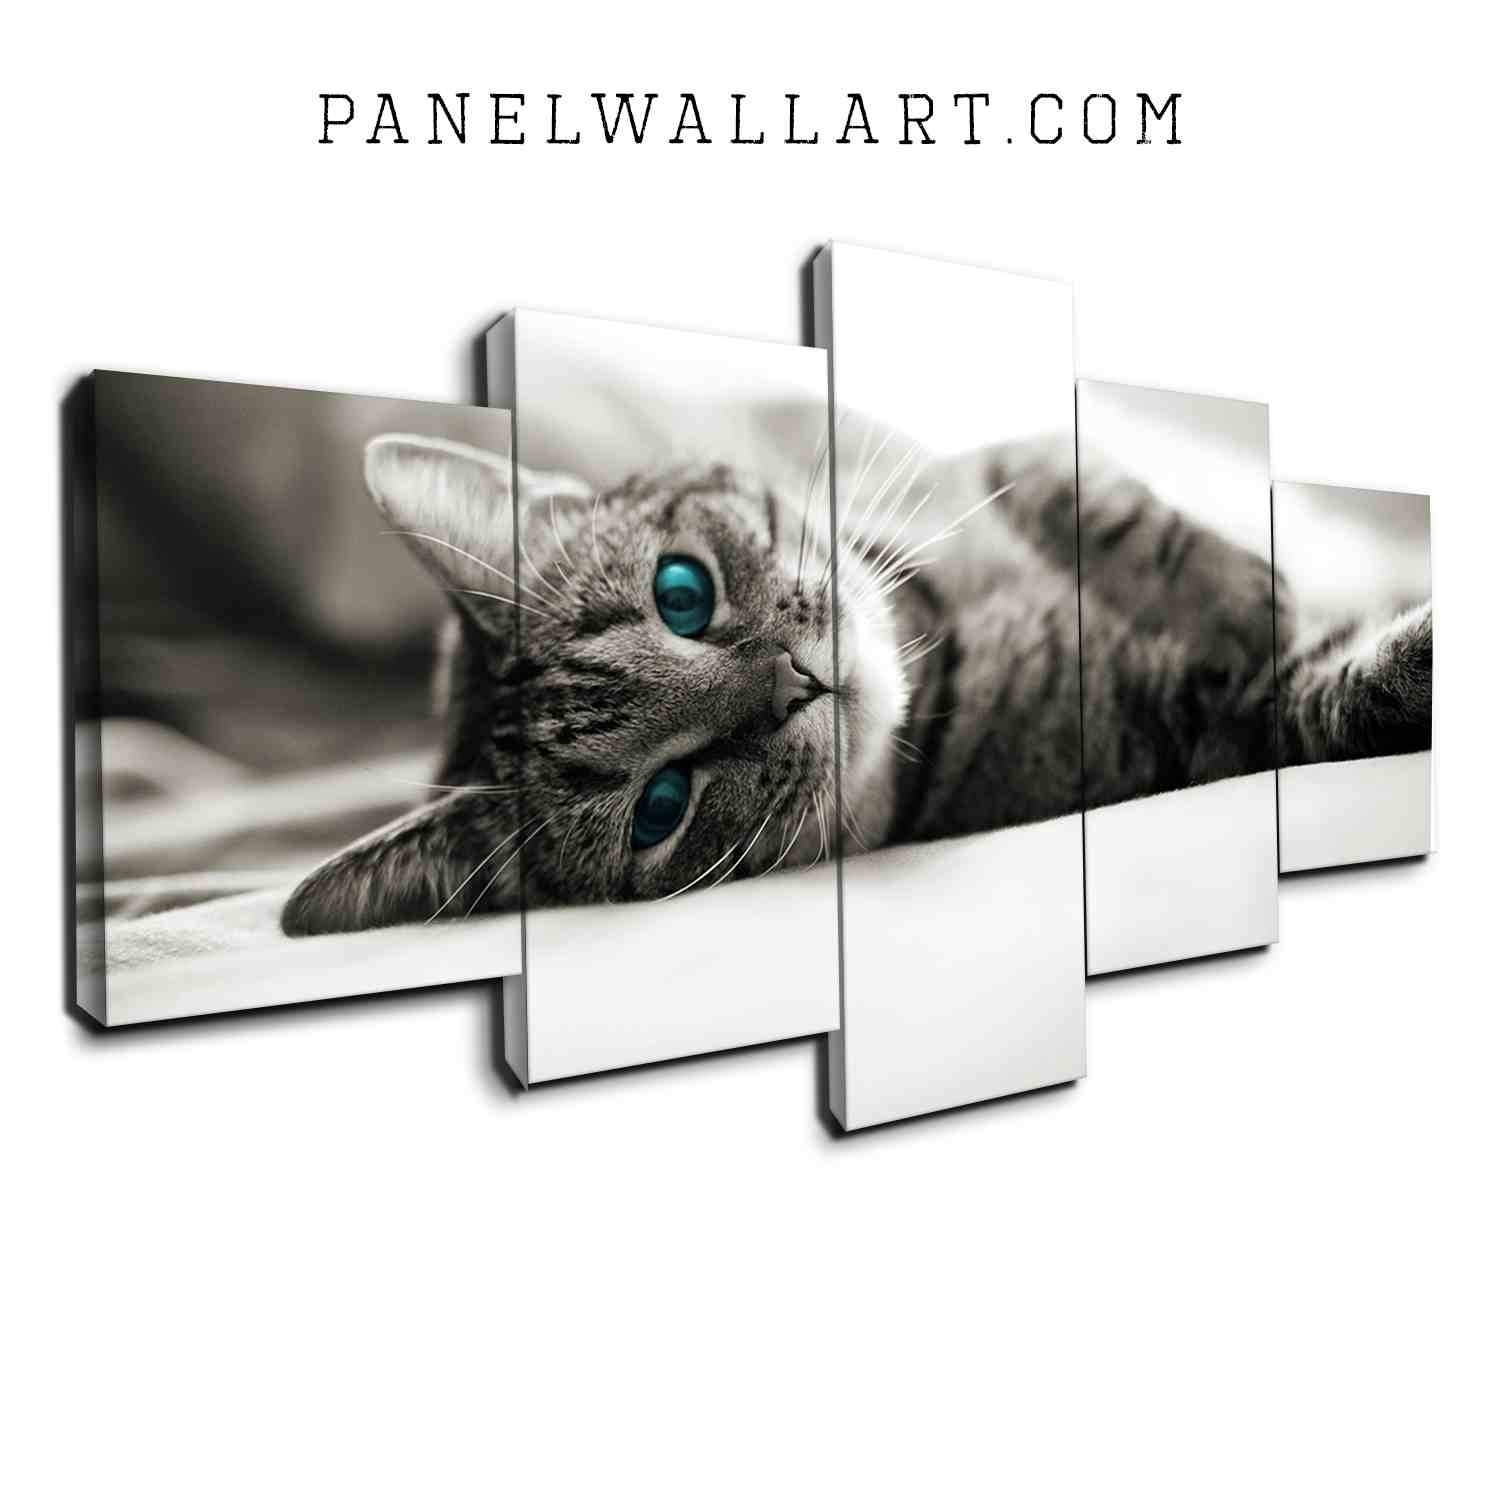 5 Panel Canvas Wall Art | Kitten On Bed | Panelwallart inside Cat Canvas Wall Art (Image 3 of 20)